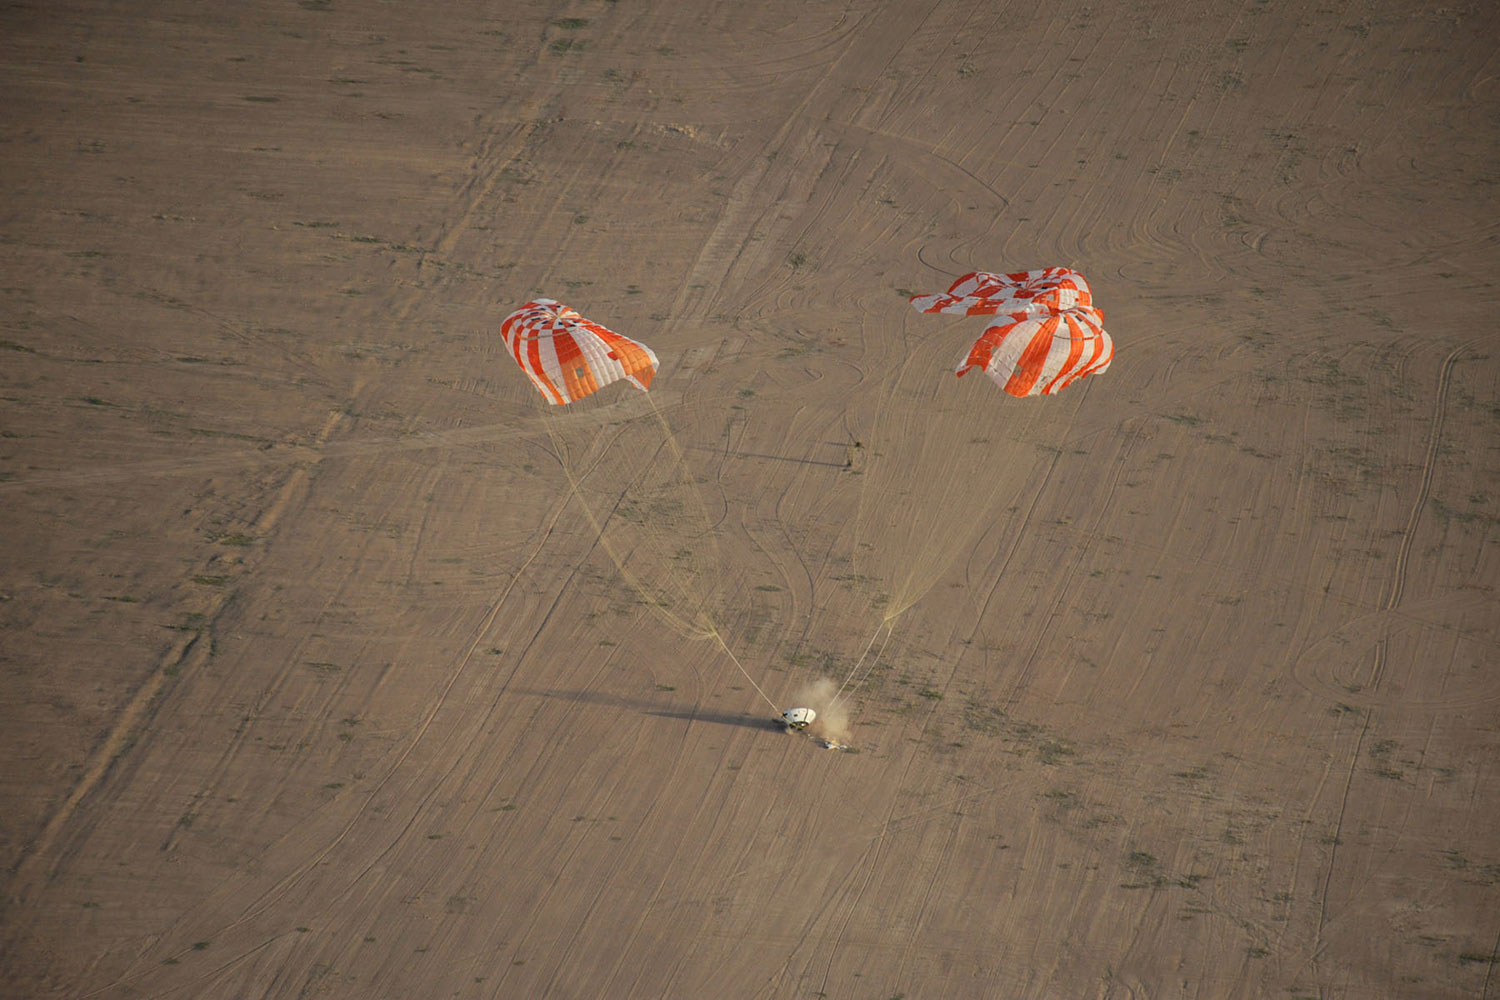 A test model of the Orion spacecraft was dropped high above the the Arizona desert on Feb. 29, 2012.